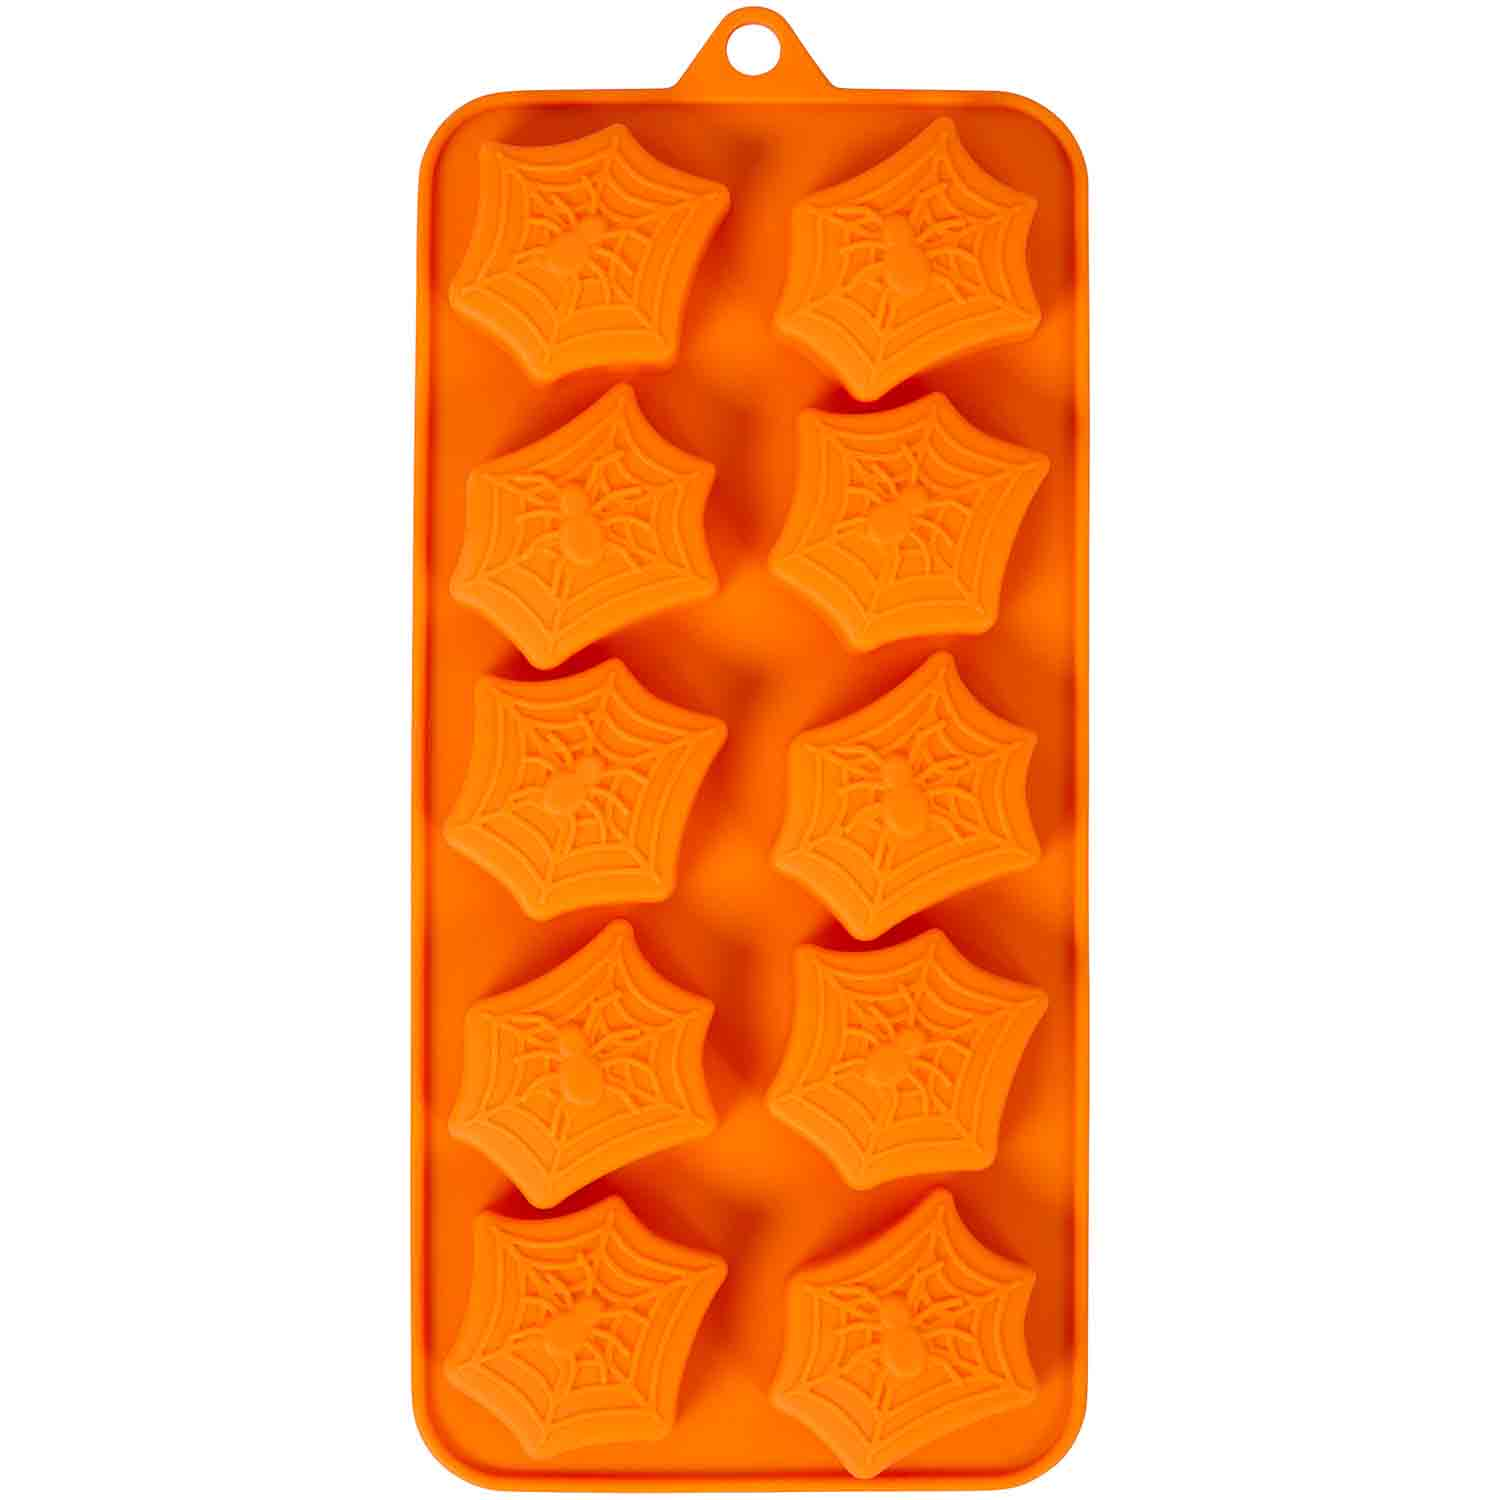 Spider Web Silicone Candy Mold